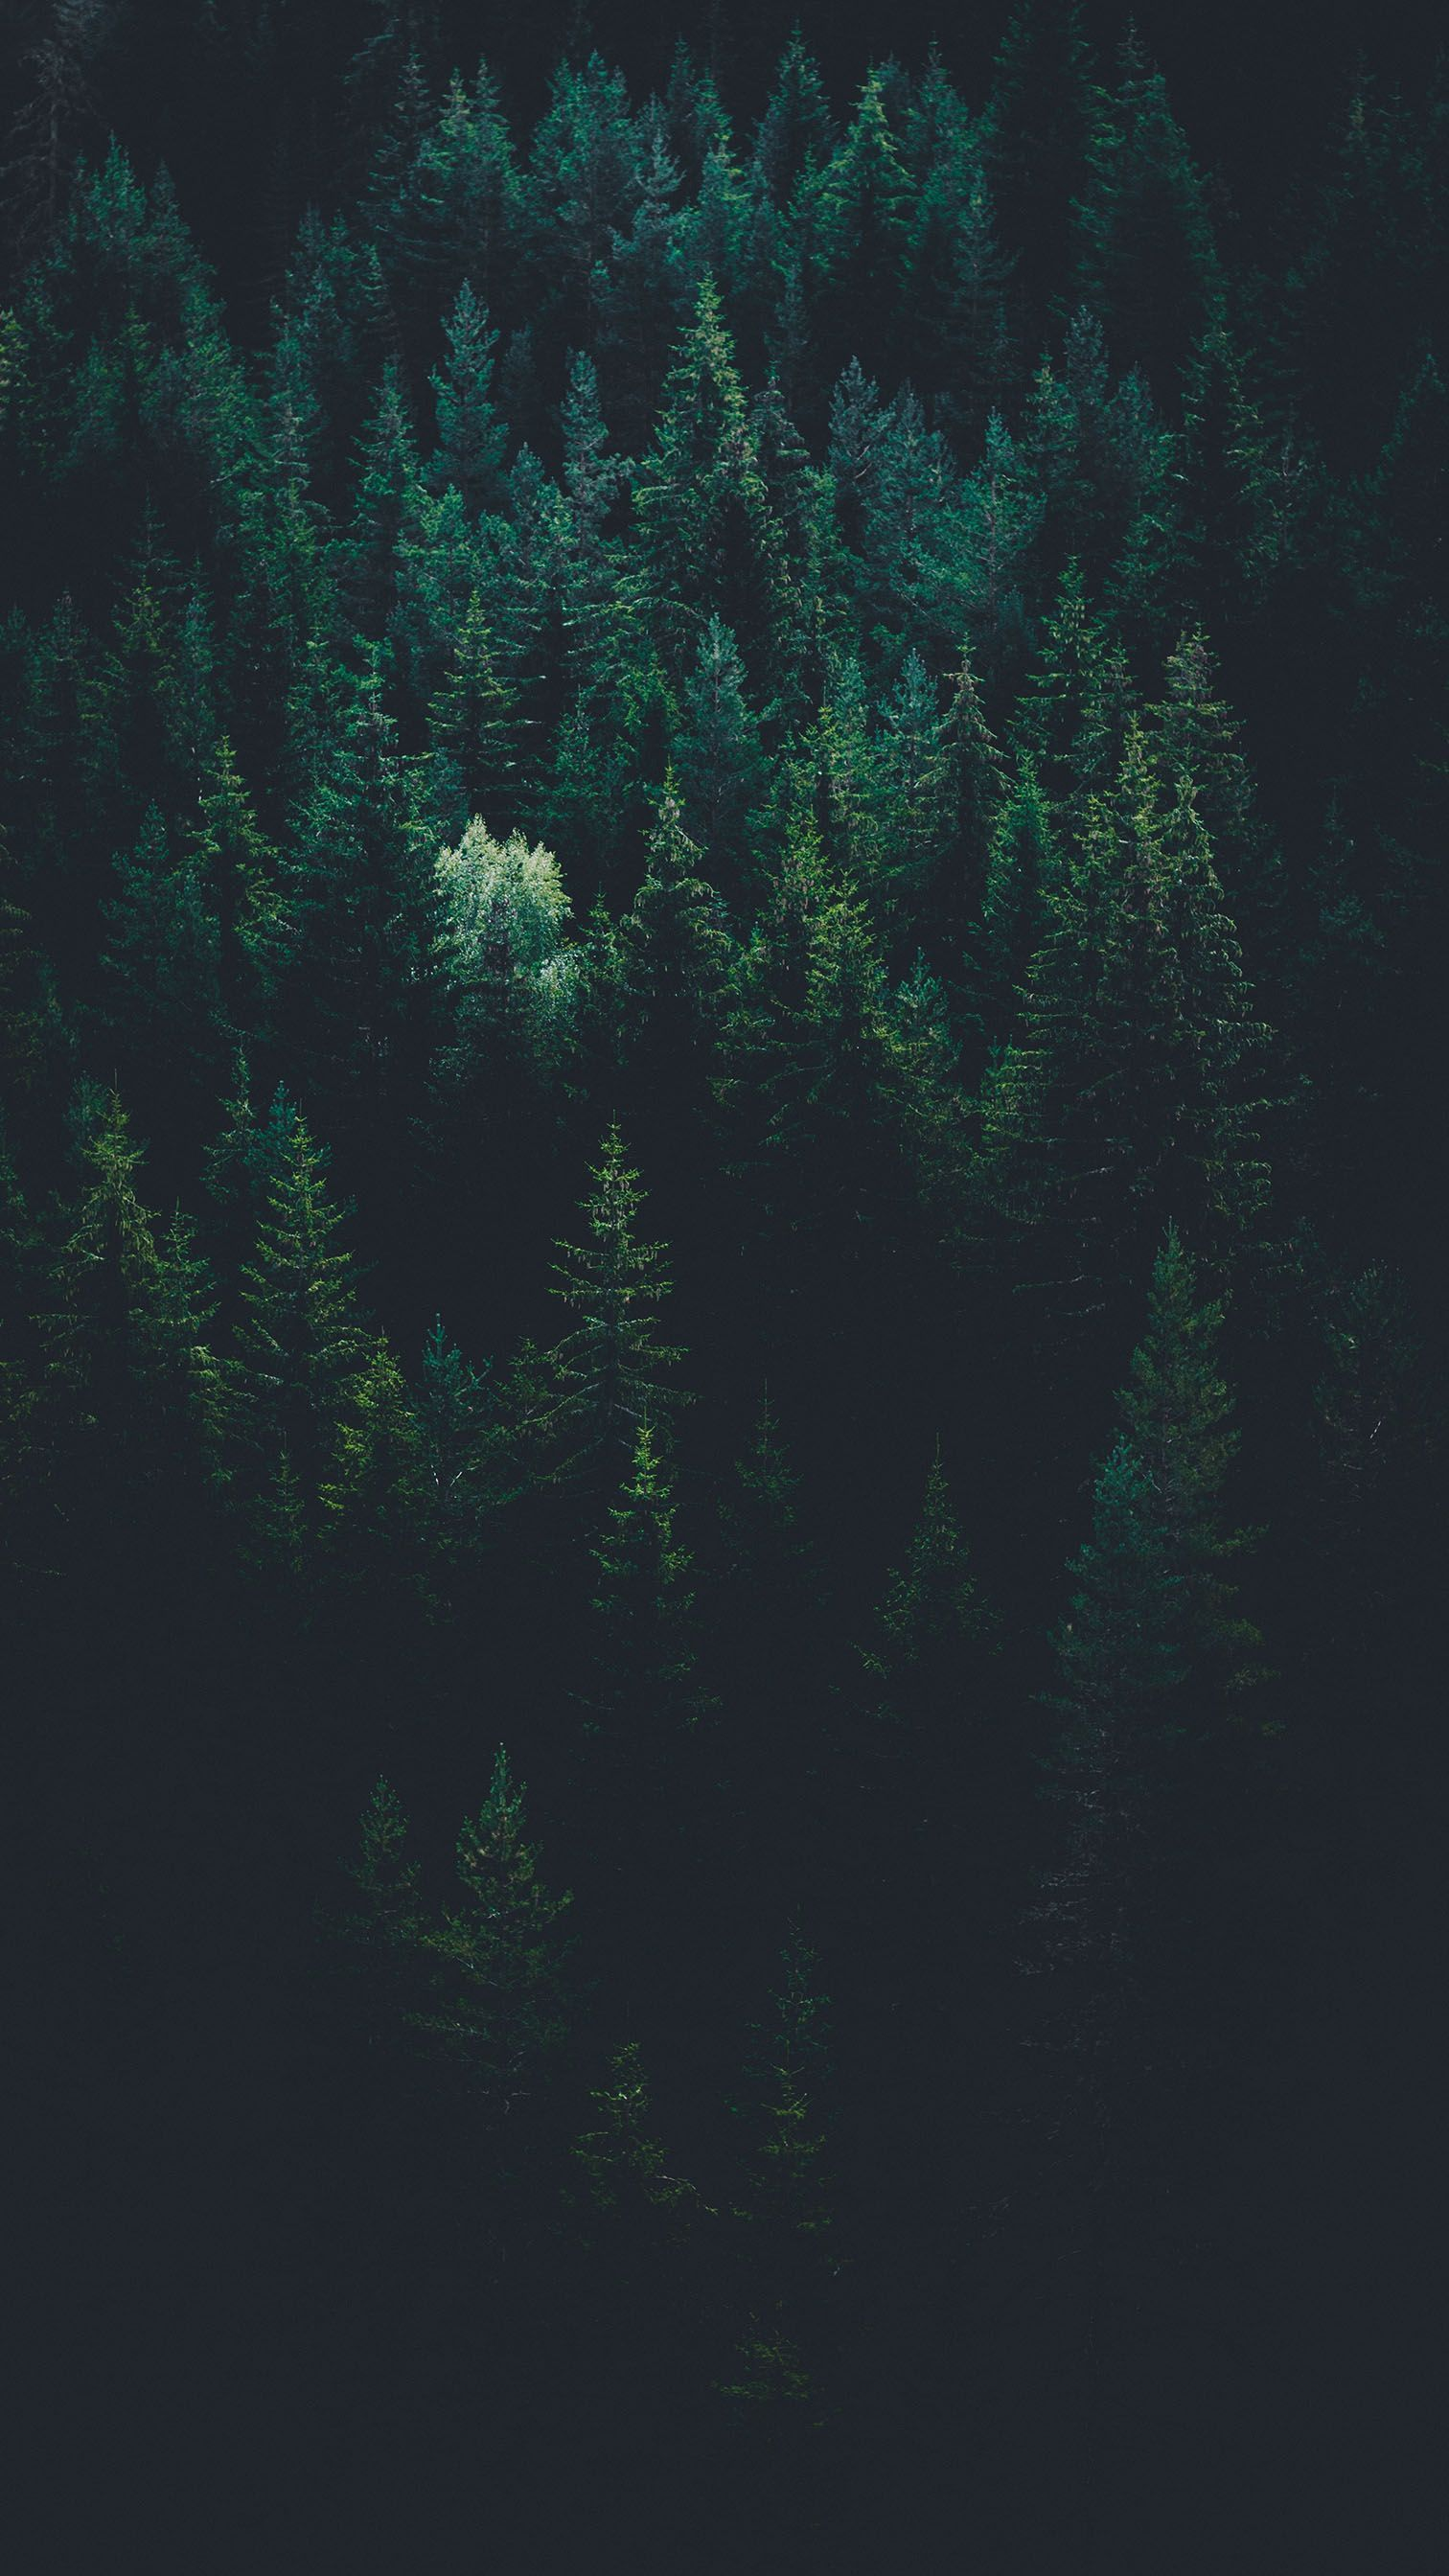 Night Forest Iphone Wallpapers Top Free Night Forest Iphone